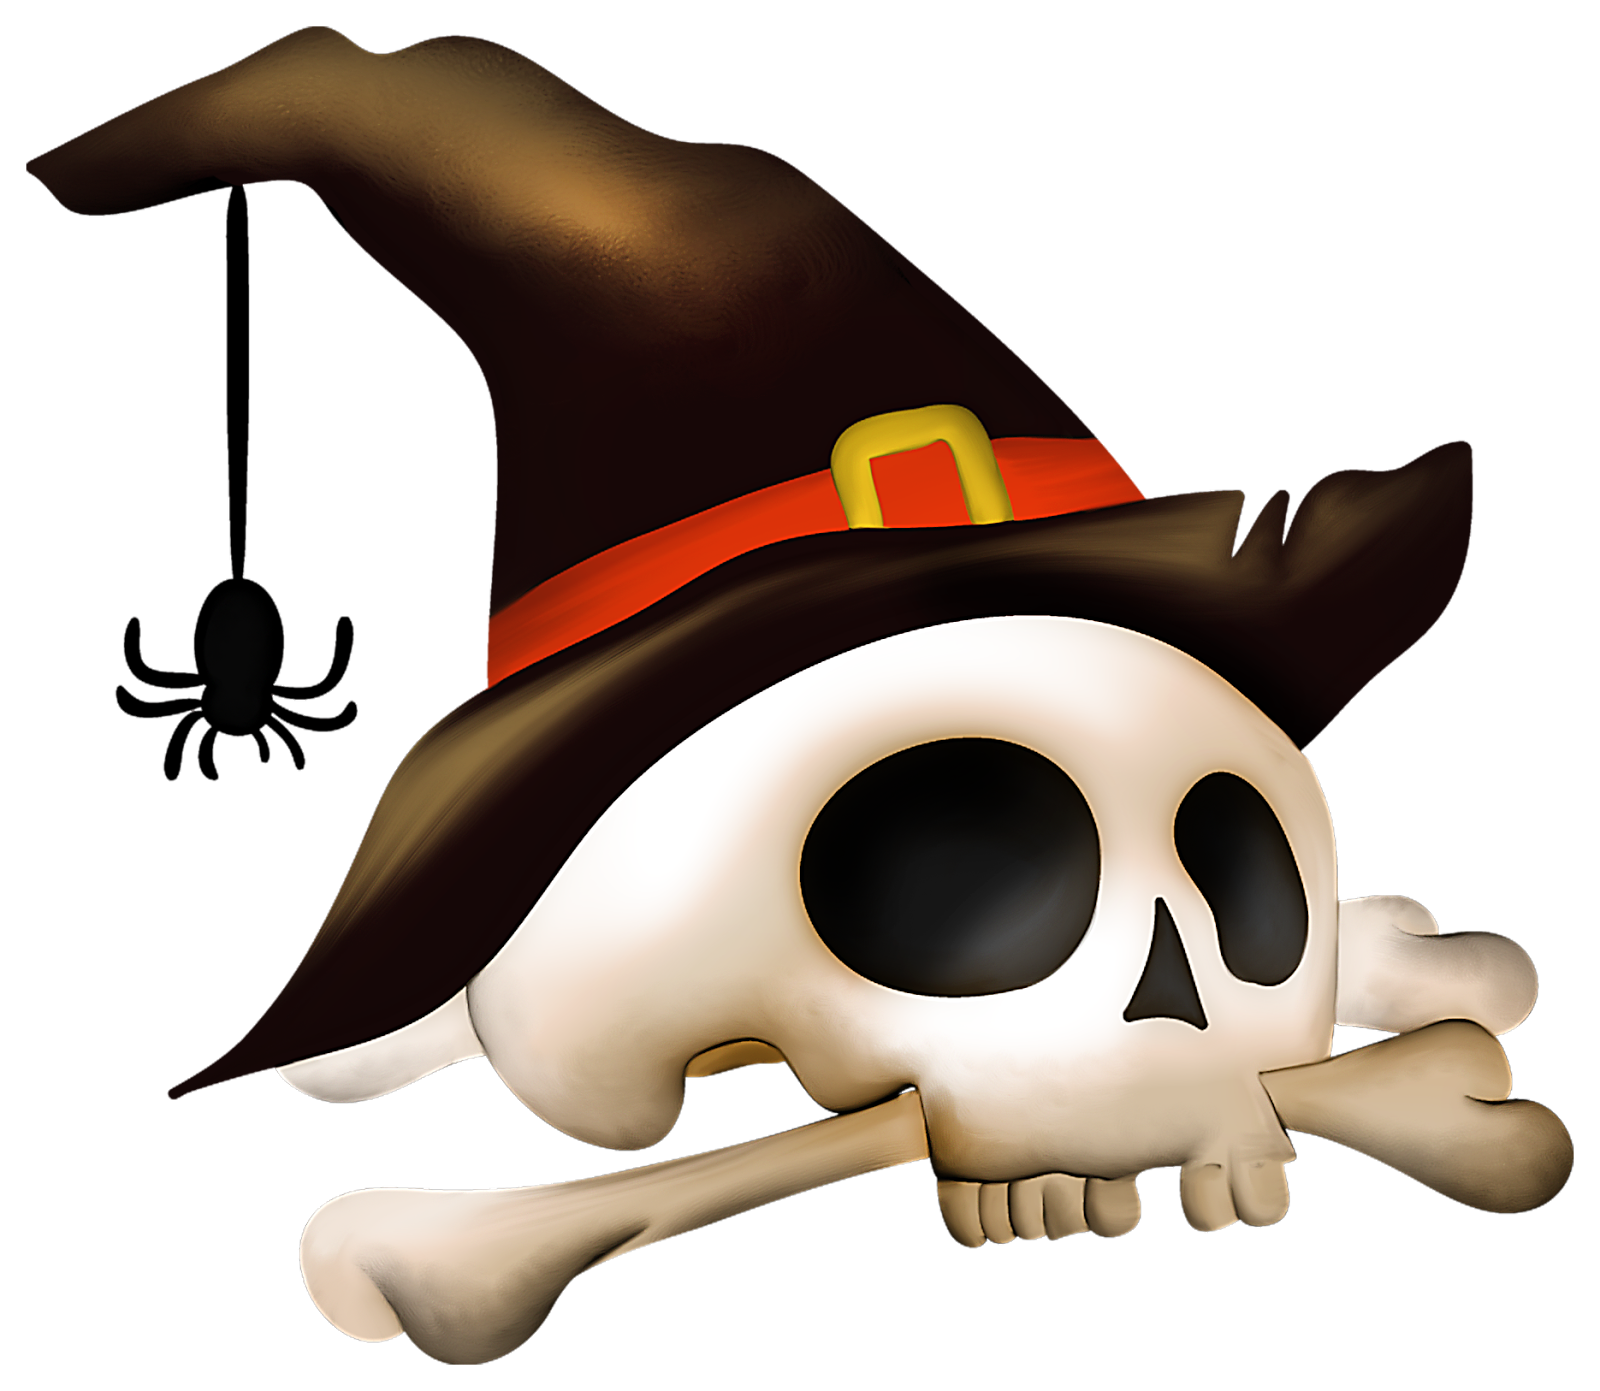 Halloween witch head clipart banner black and white library Halloween skull png #26476 - Free Icons and PNG Backgrounds banner black and white library